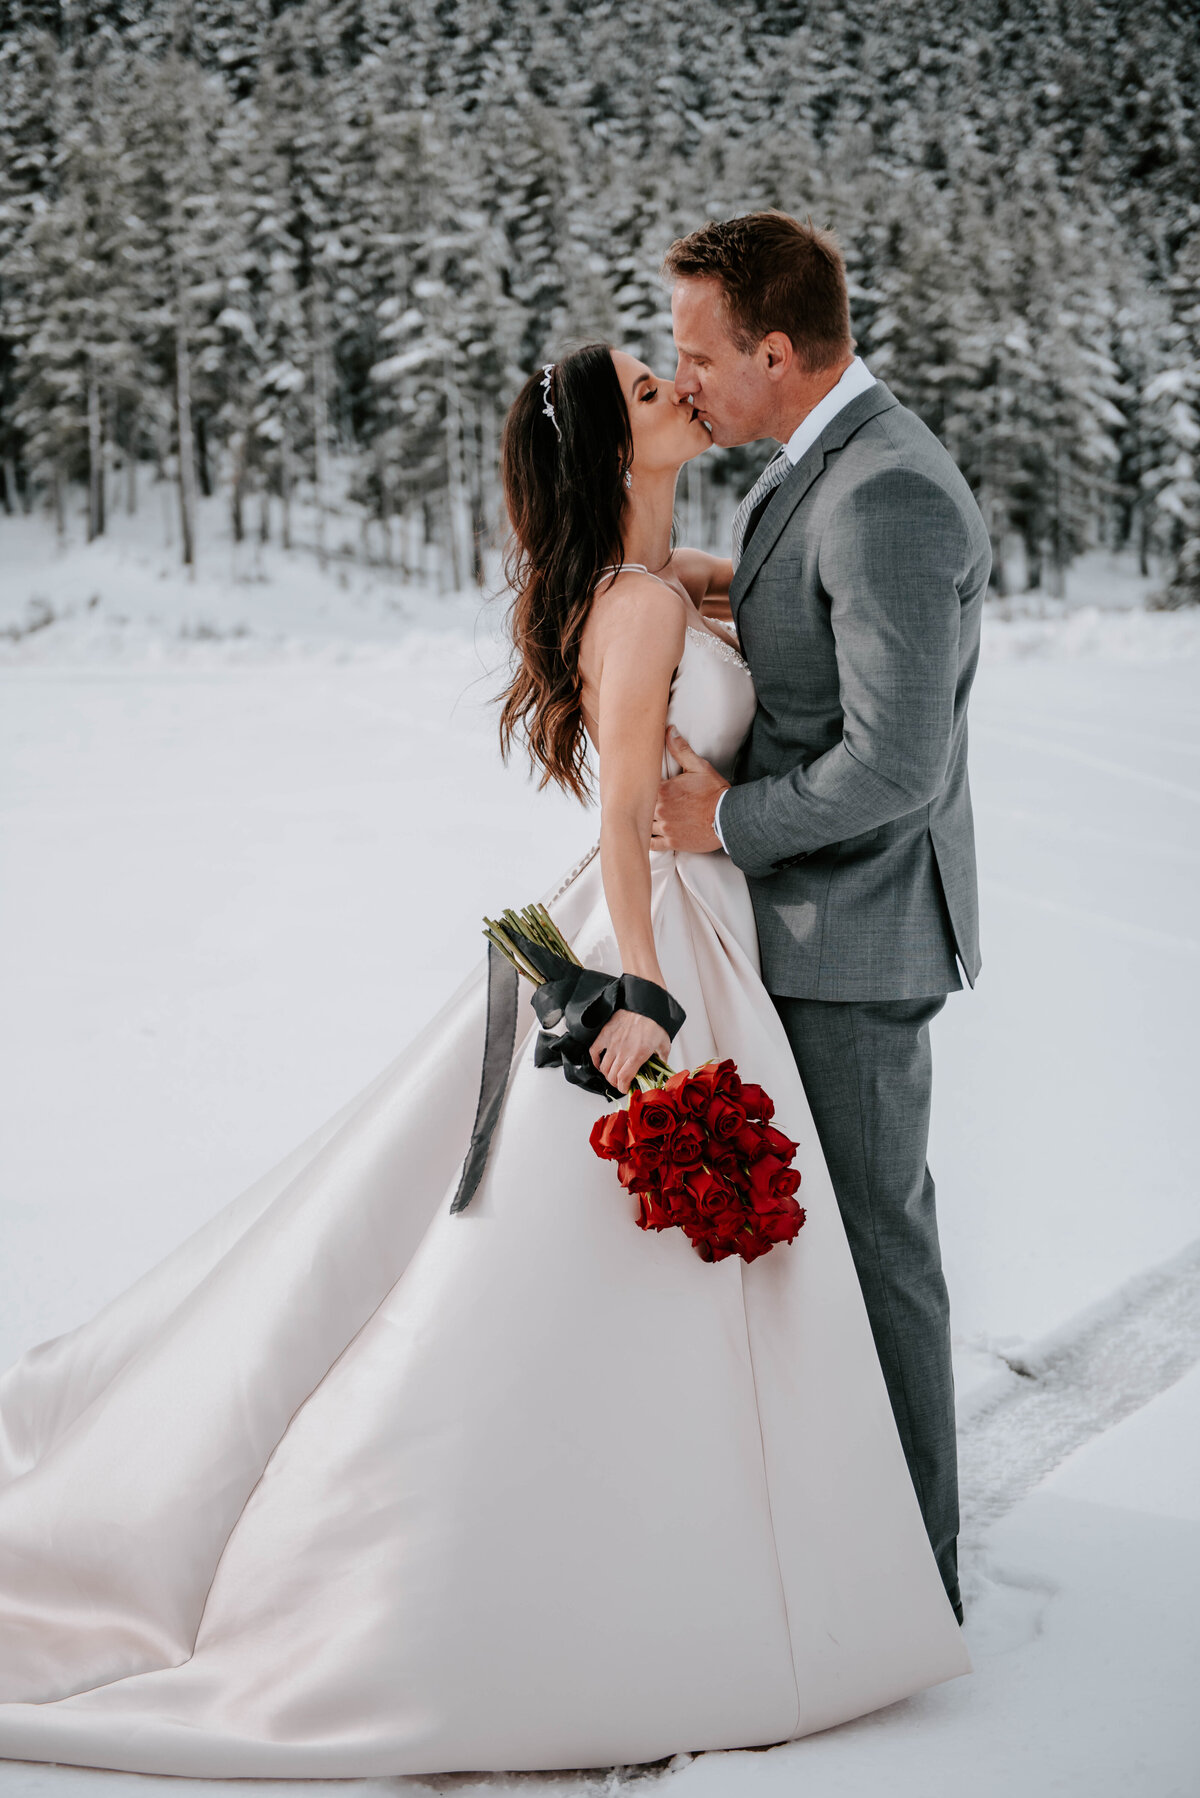 mt-bachelor-snow-winter-elopement-bend-oregon-wedding-photographer-2080